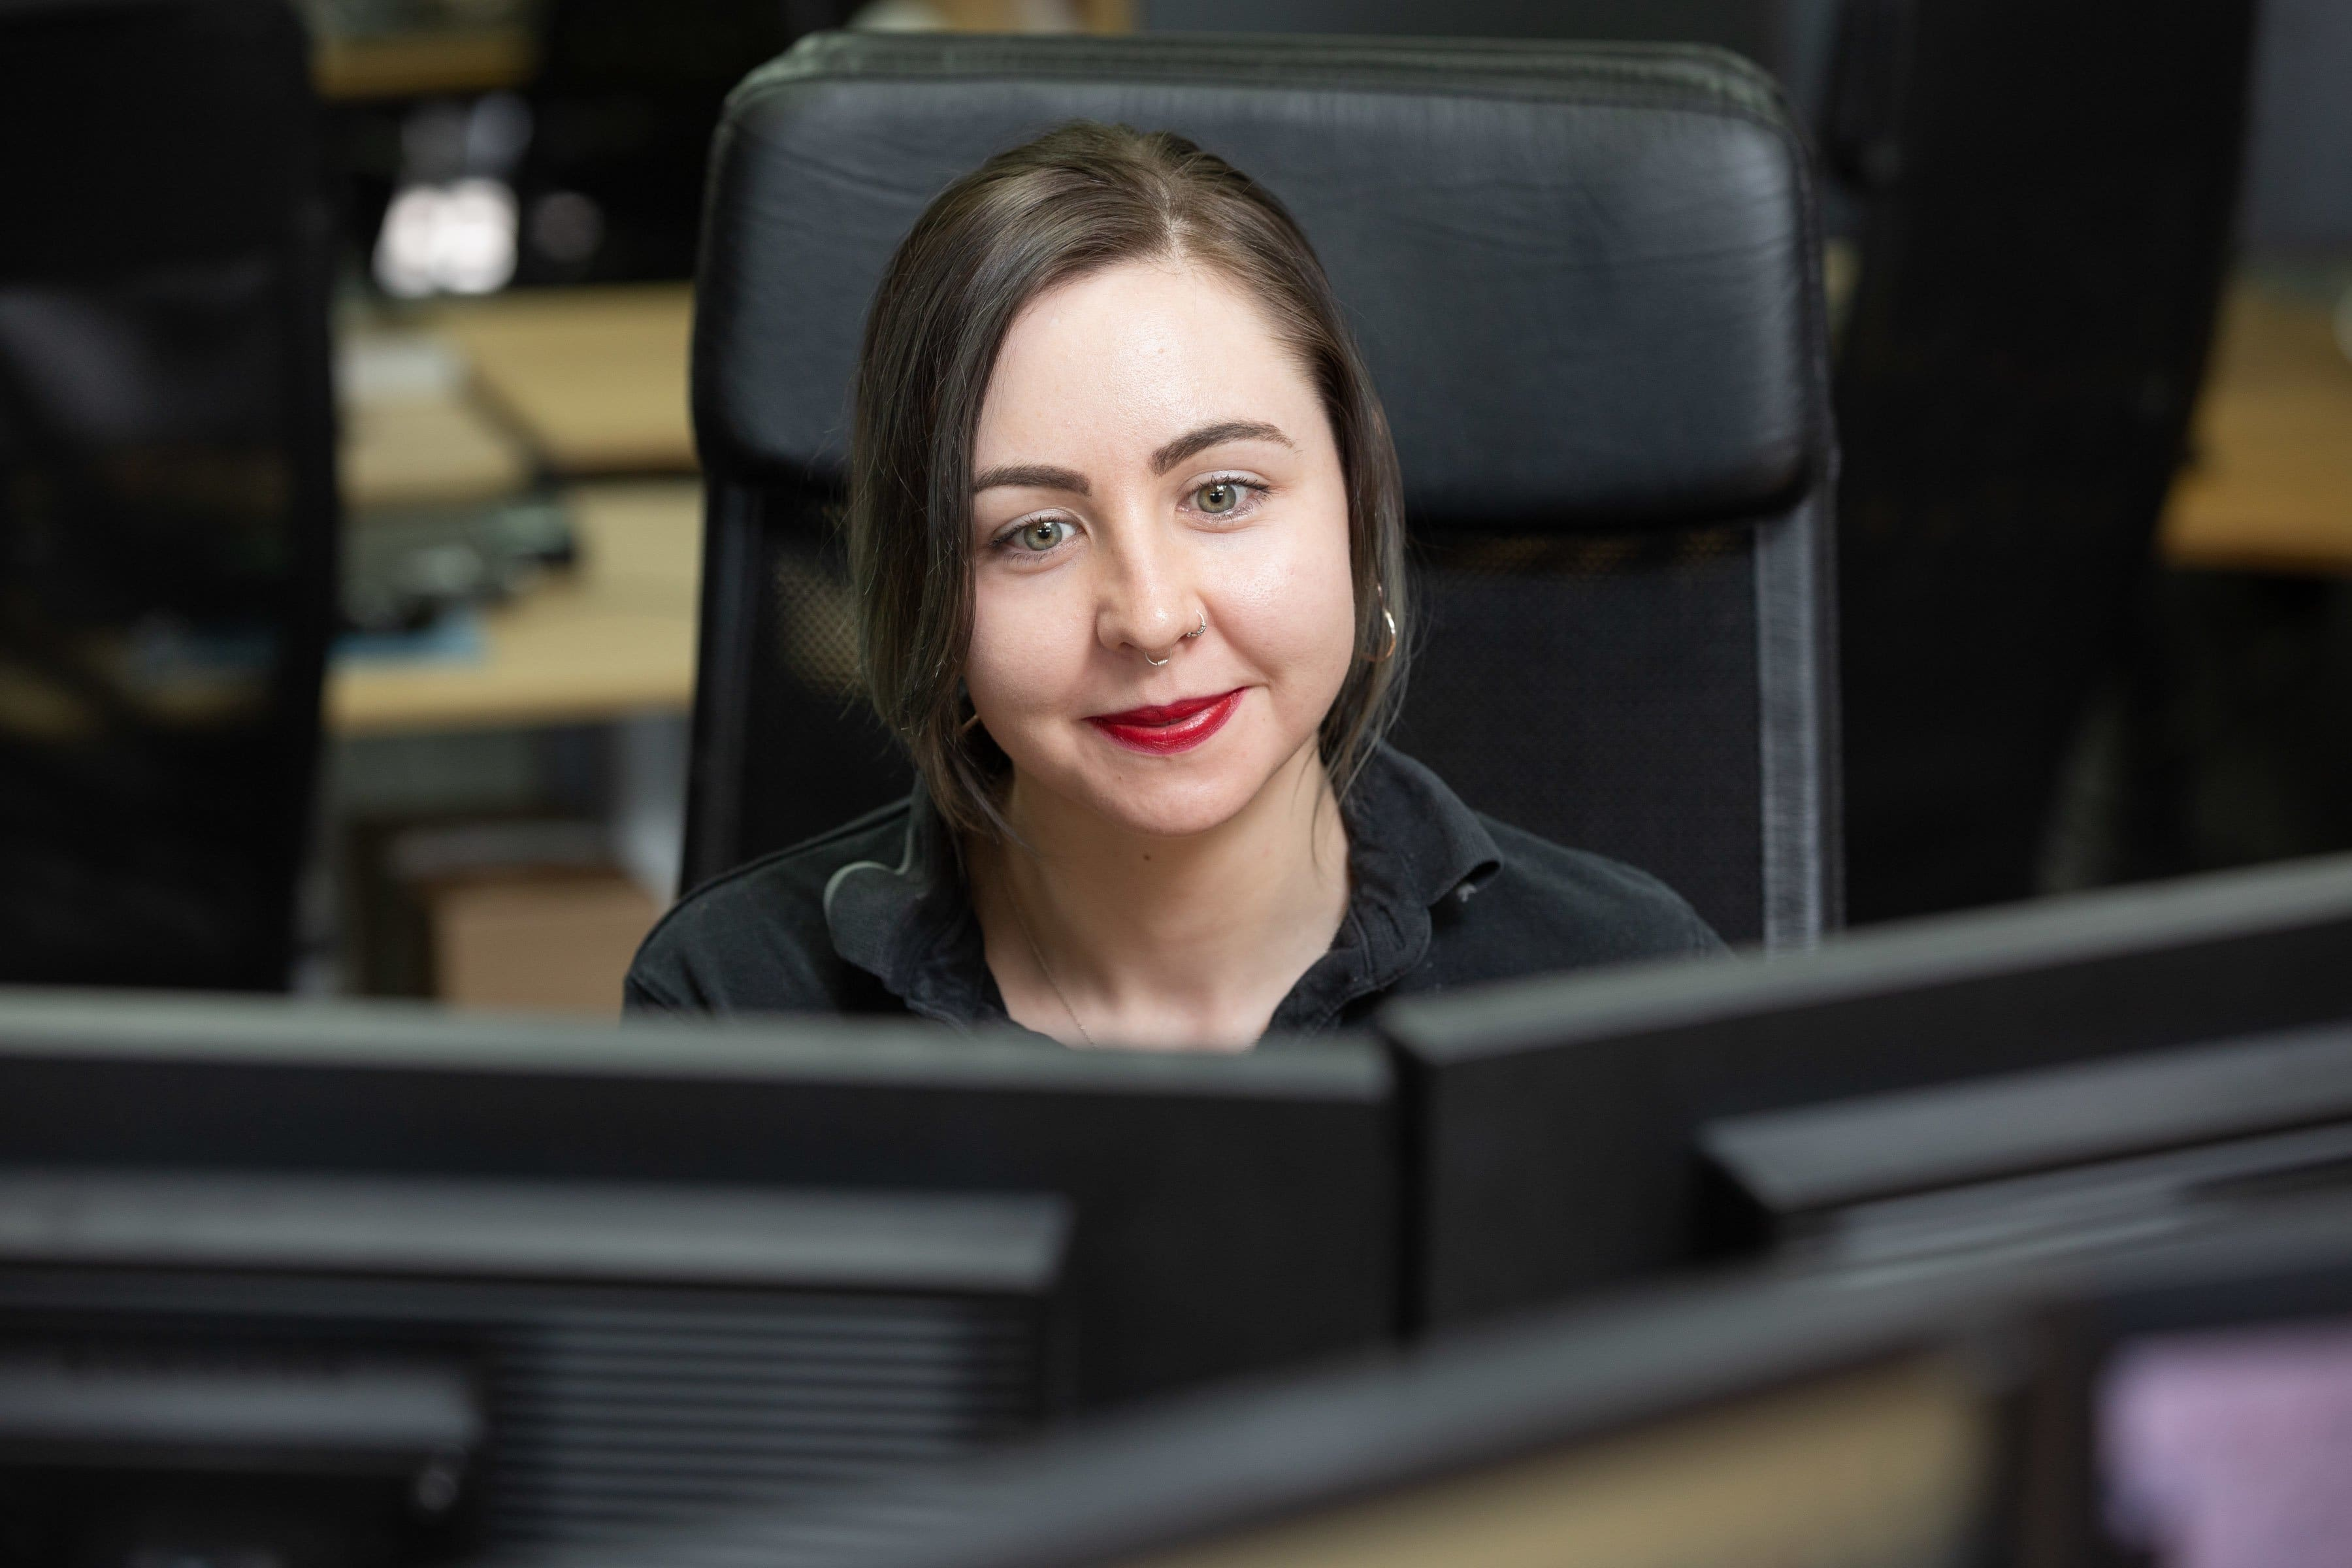 Customer Service Manager, working at her computer